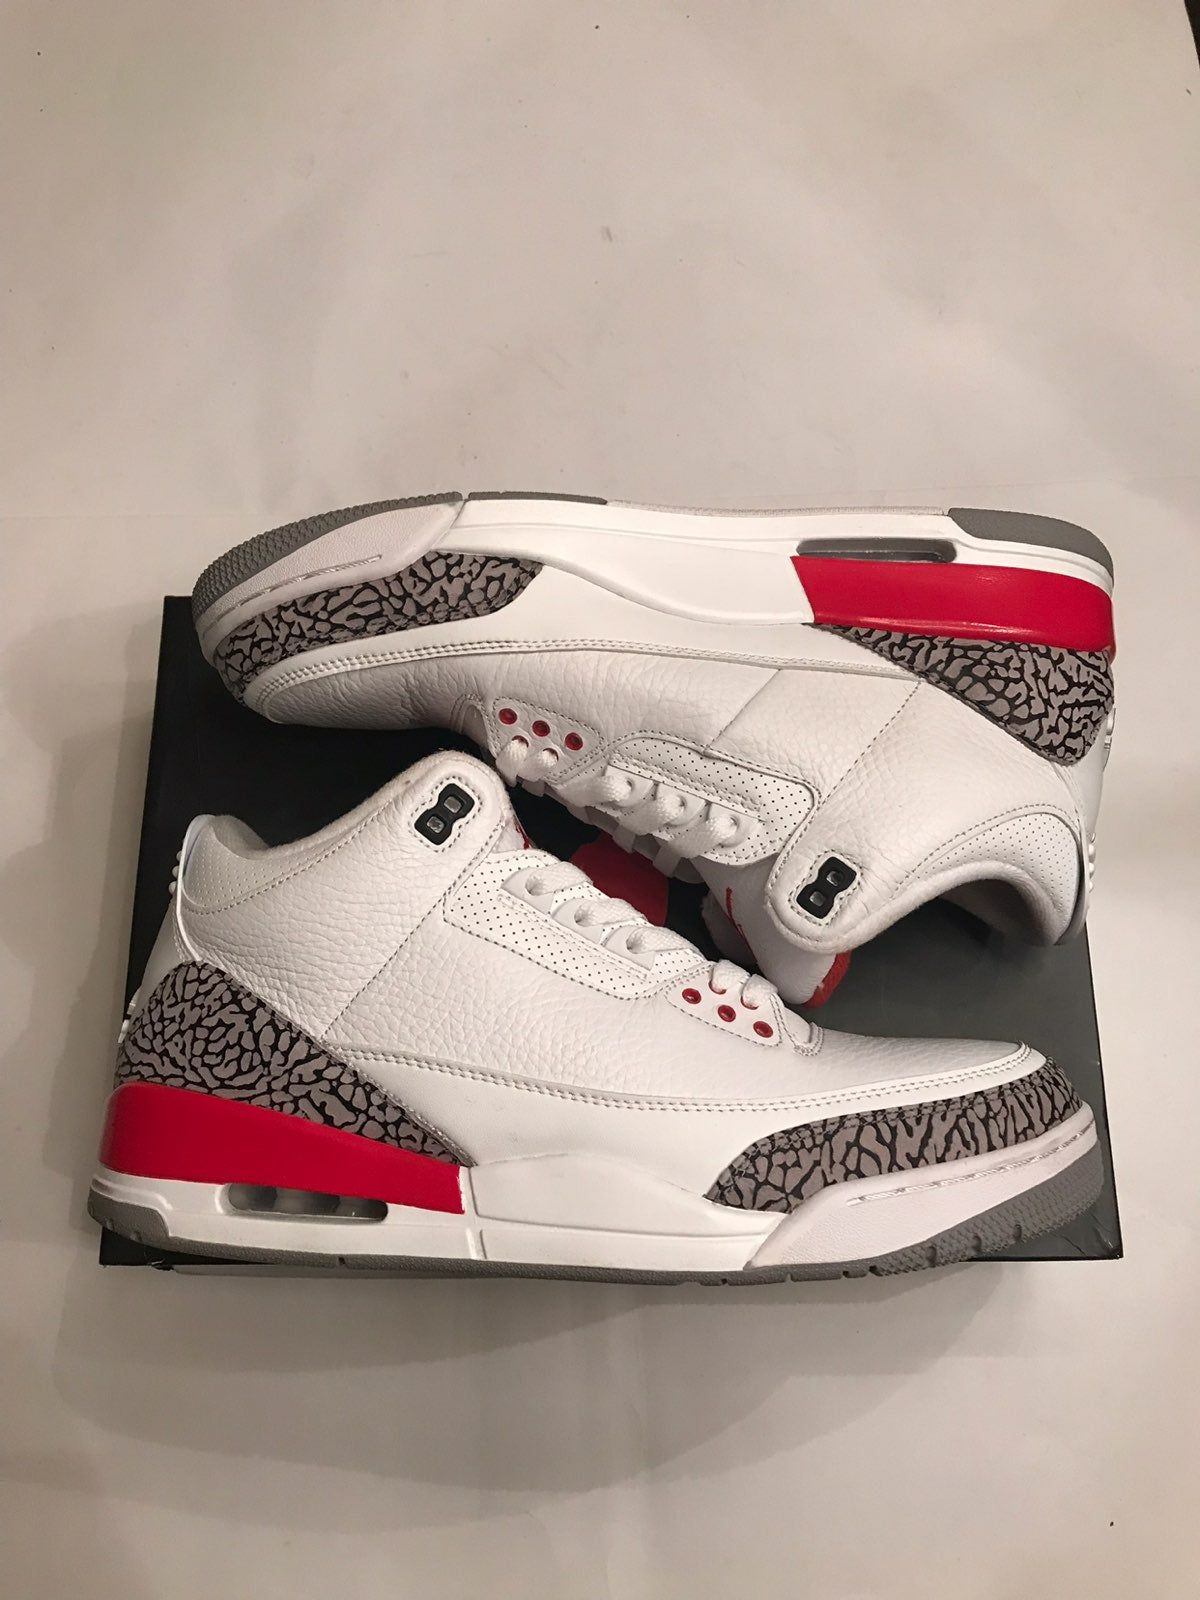 Used Jordan 3 hall of fame size 12. Shoes come with the original ...